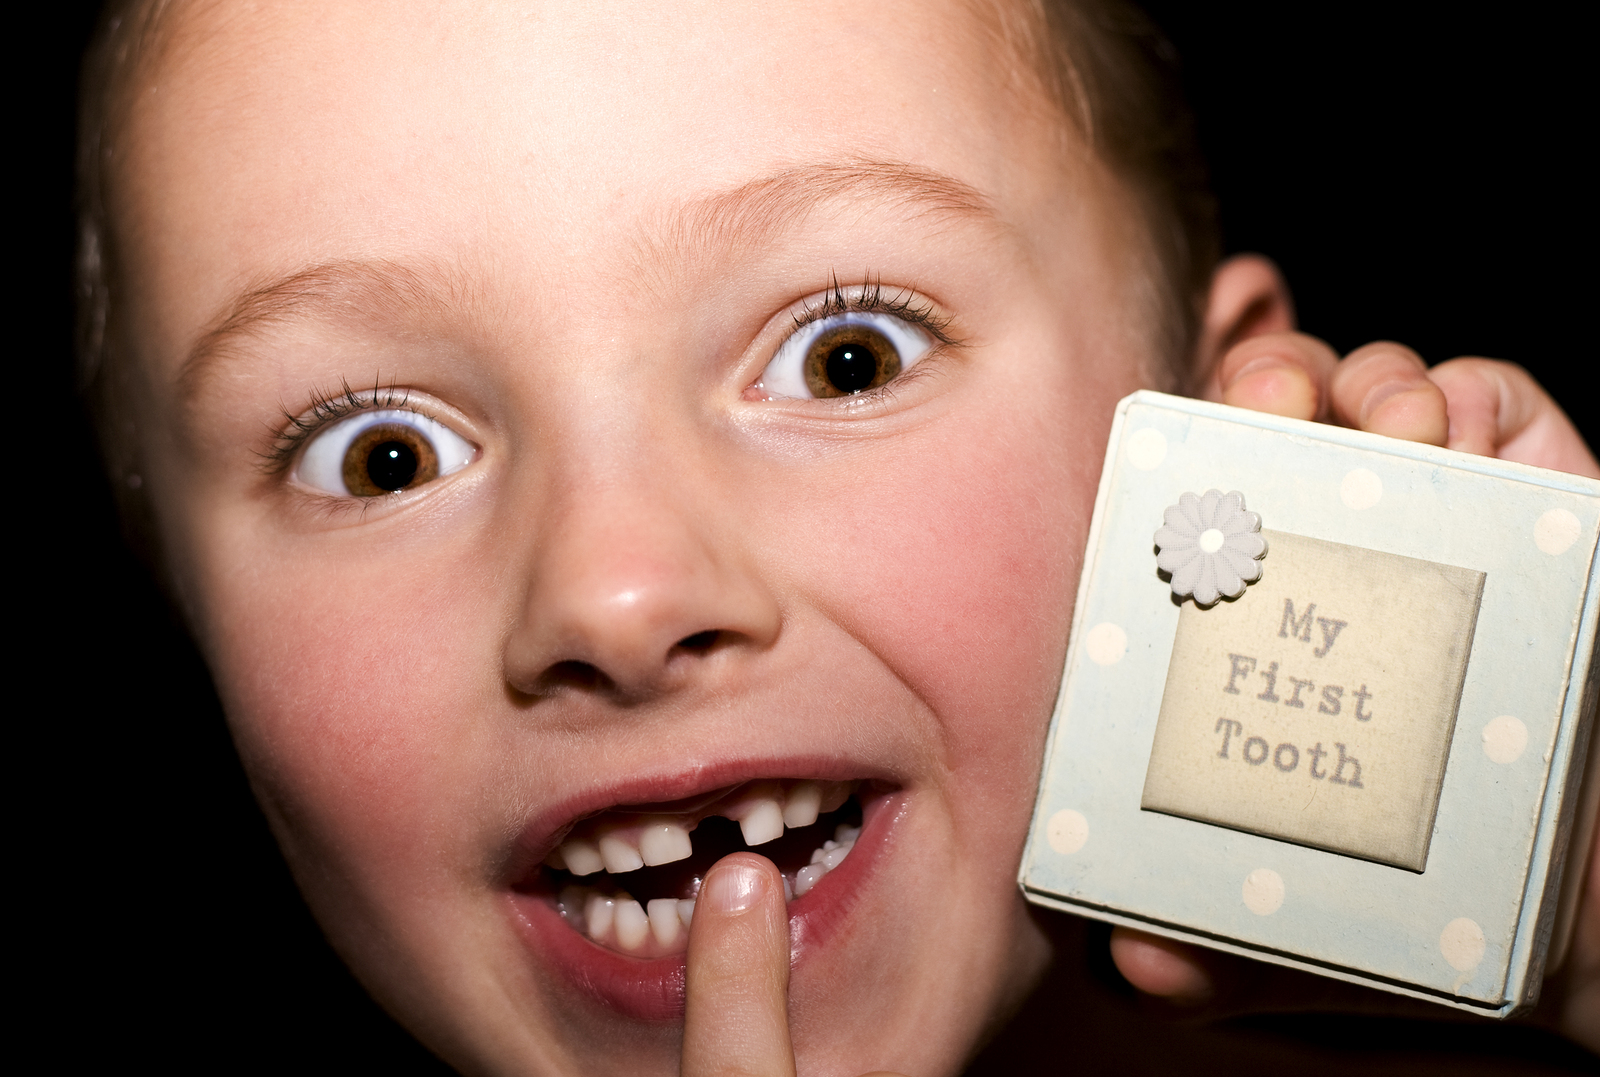 What Does Your Family's Tooth Fairy Look Like?